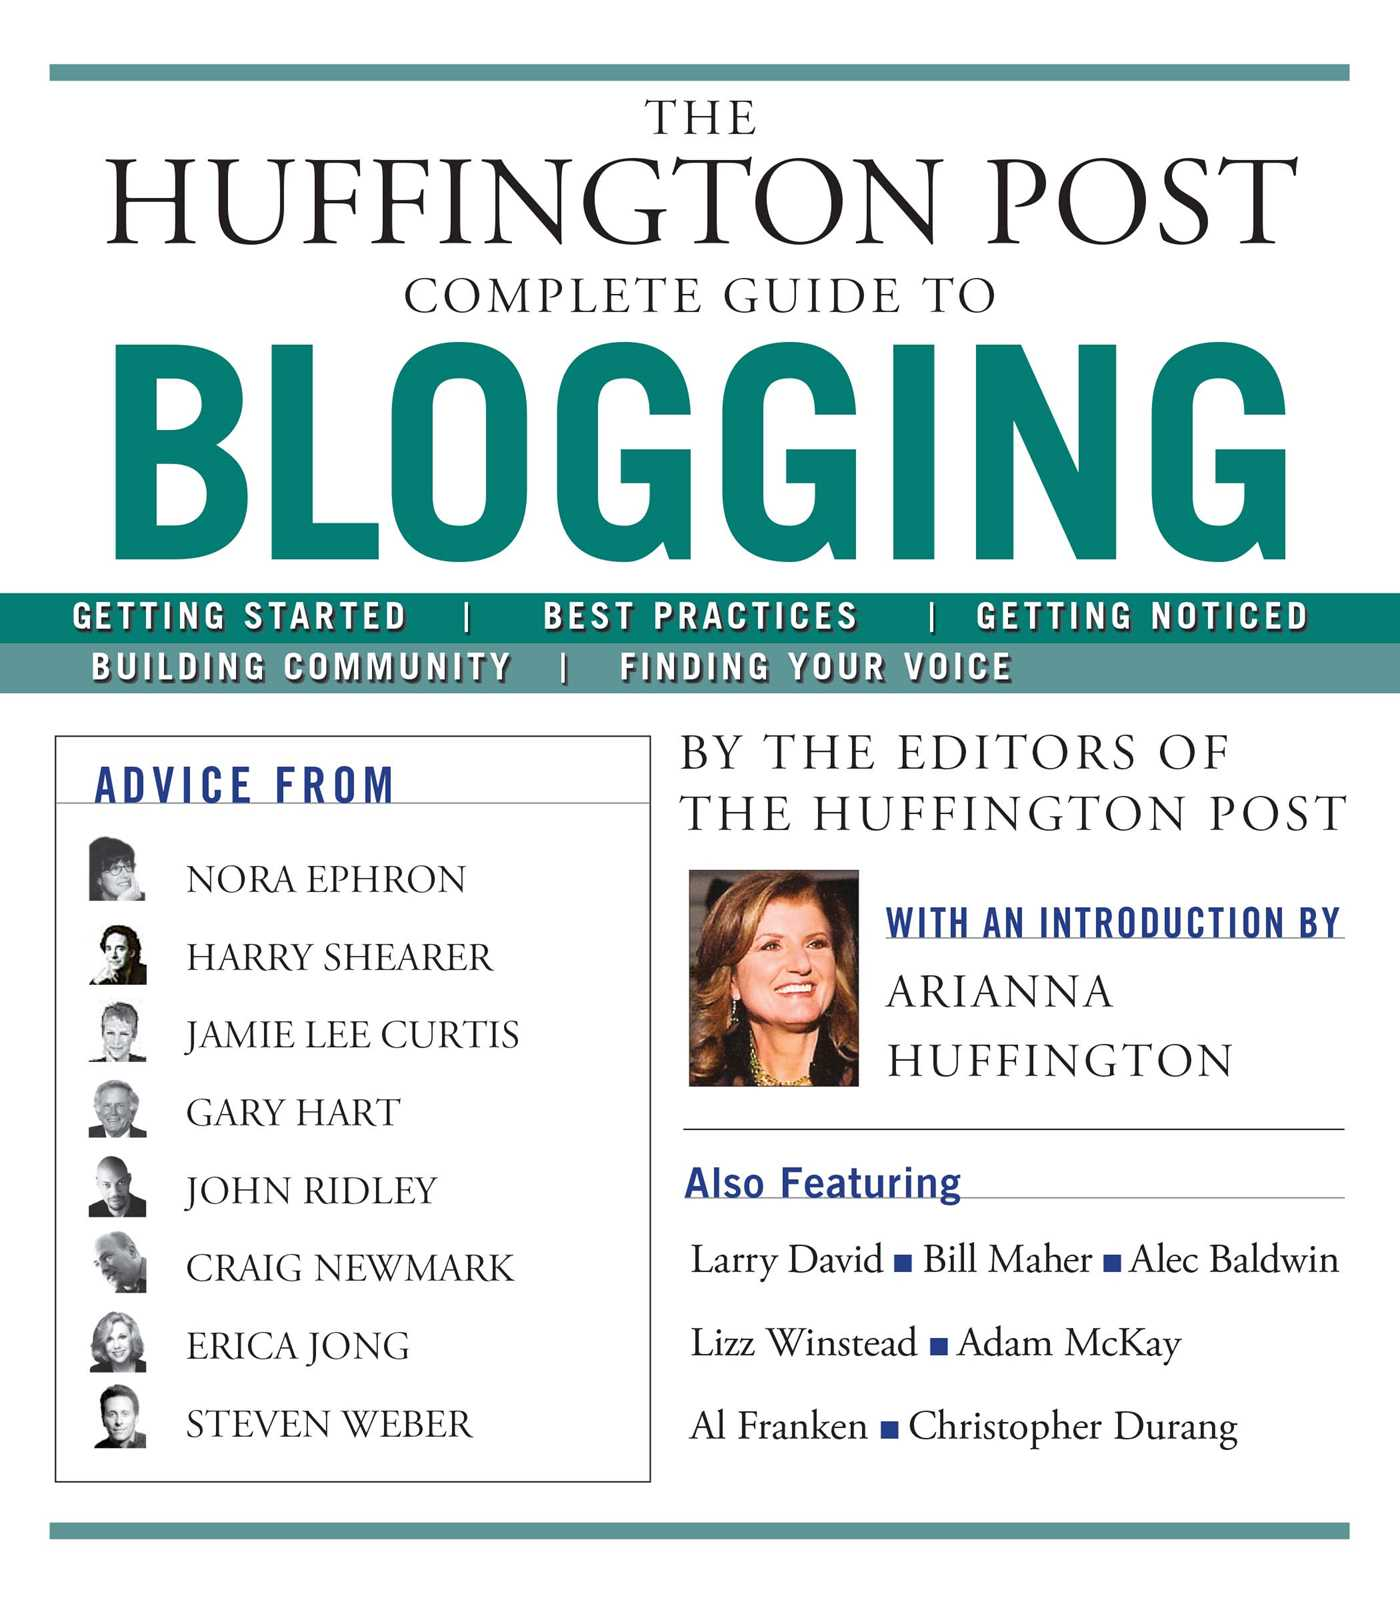 The huffington post complete guide to blogging 9781439105009 hr